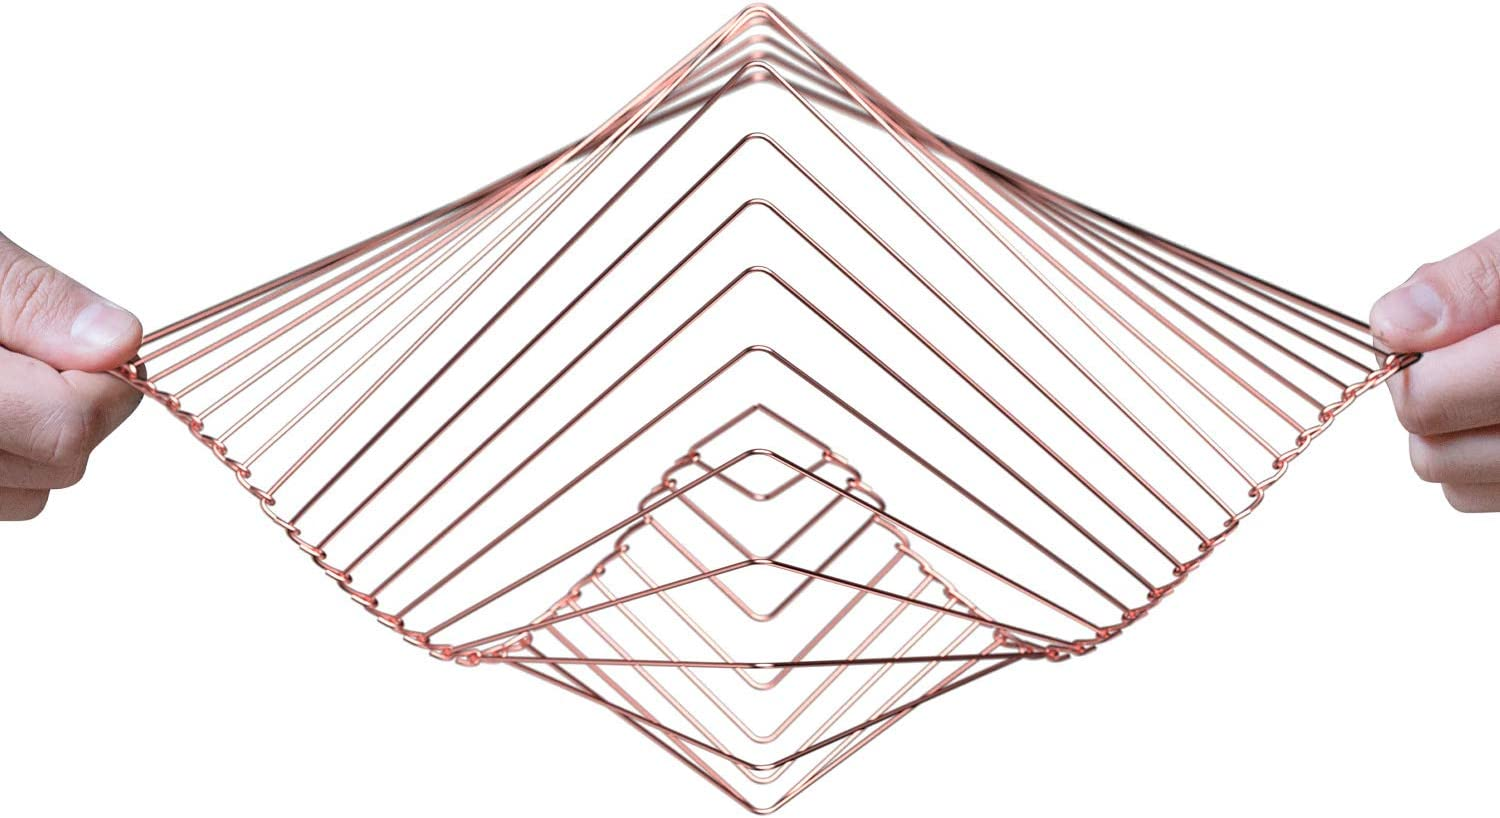 Atellani Square Wave | The Mesmerizing Kinetic Wind Spinner | Magical Calming Art Piece by Ivan Black (Copper)